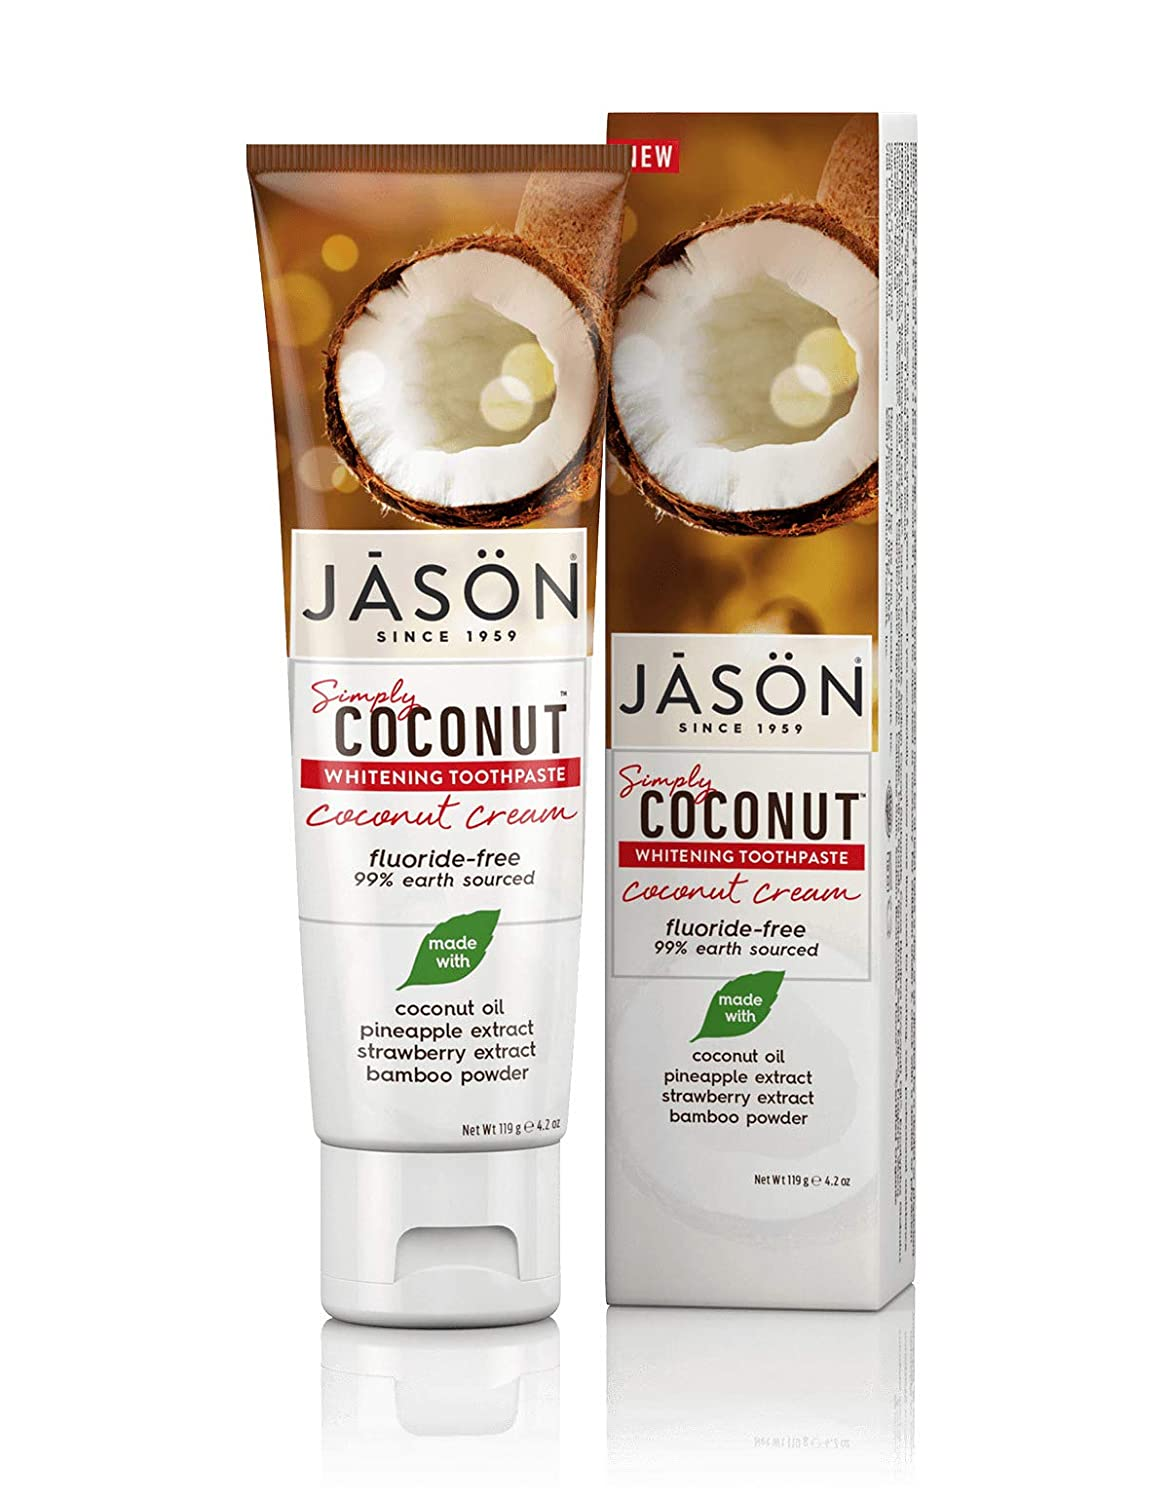 Jason Simply Coconut Whitening Toothpaste, Coconut Cream, 4.2 Ounce